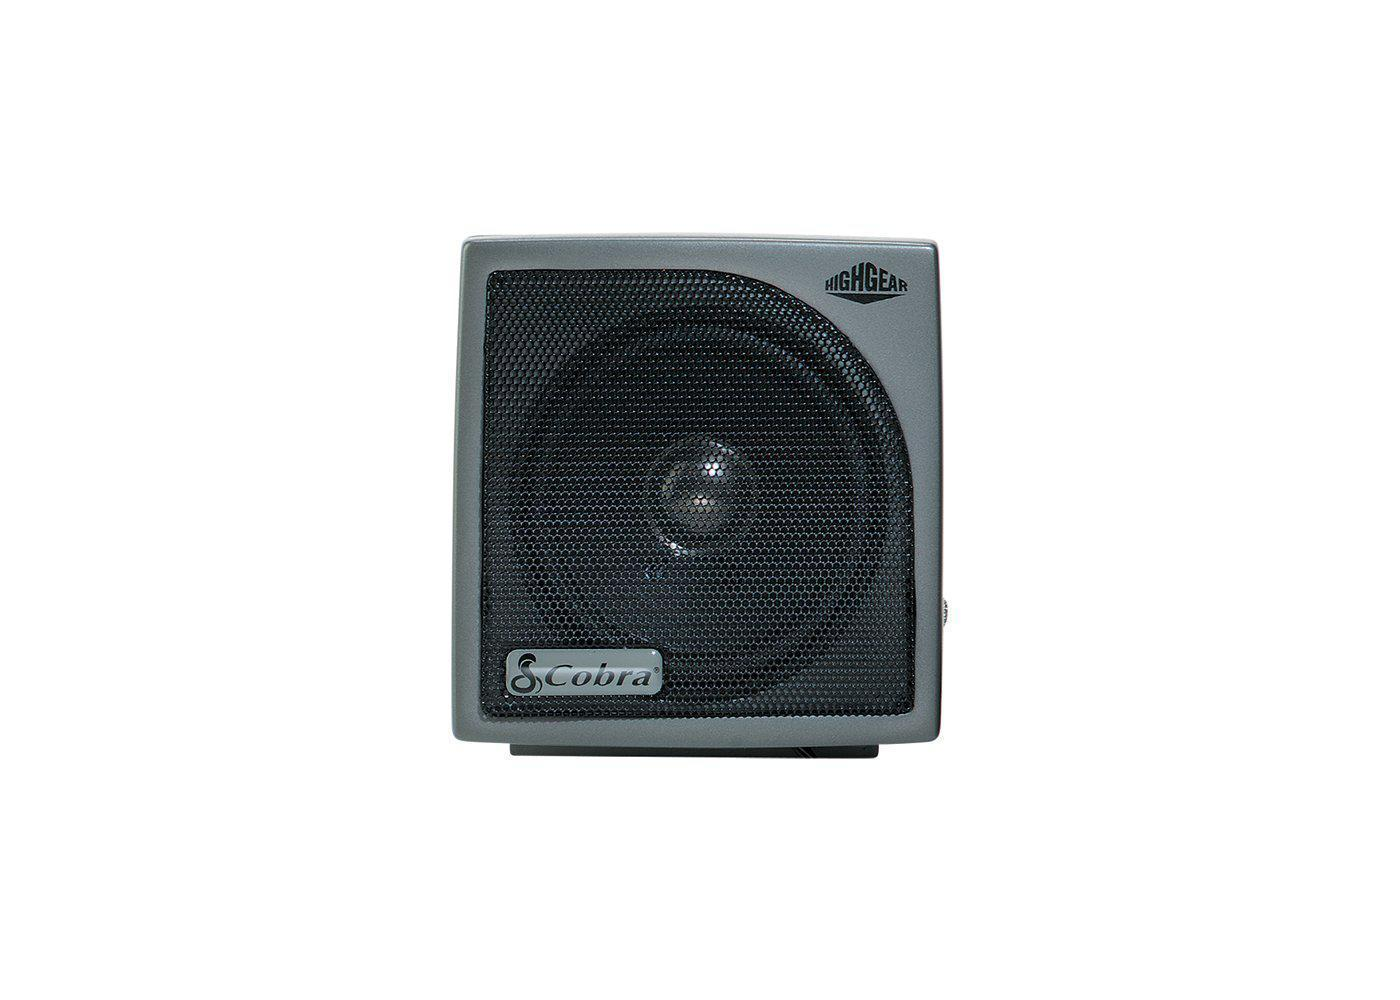 HG S500 - Dynamic External CB Speaker with Noise Filter and Talk-back - cobra.com